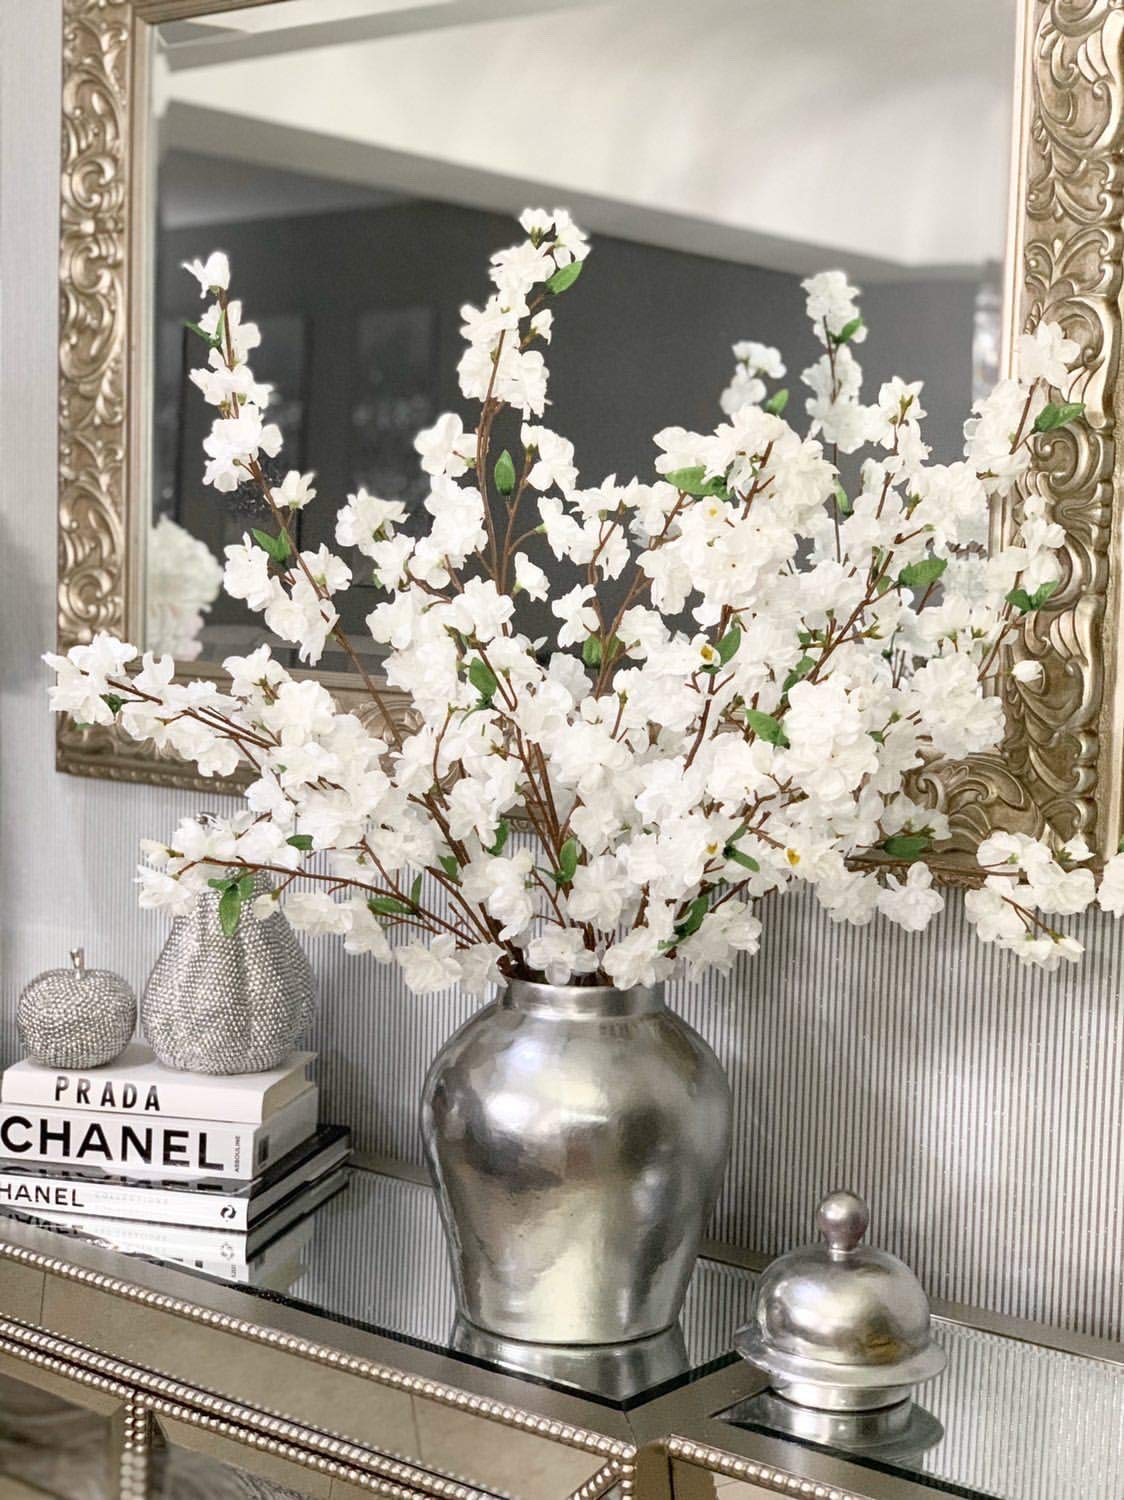 Compare Silk Flowers to Live Flowers